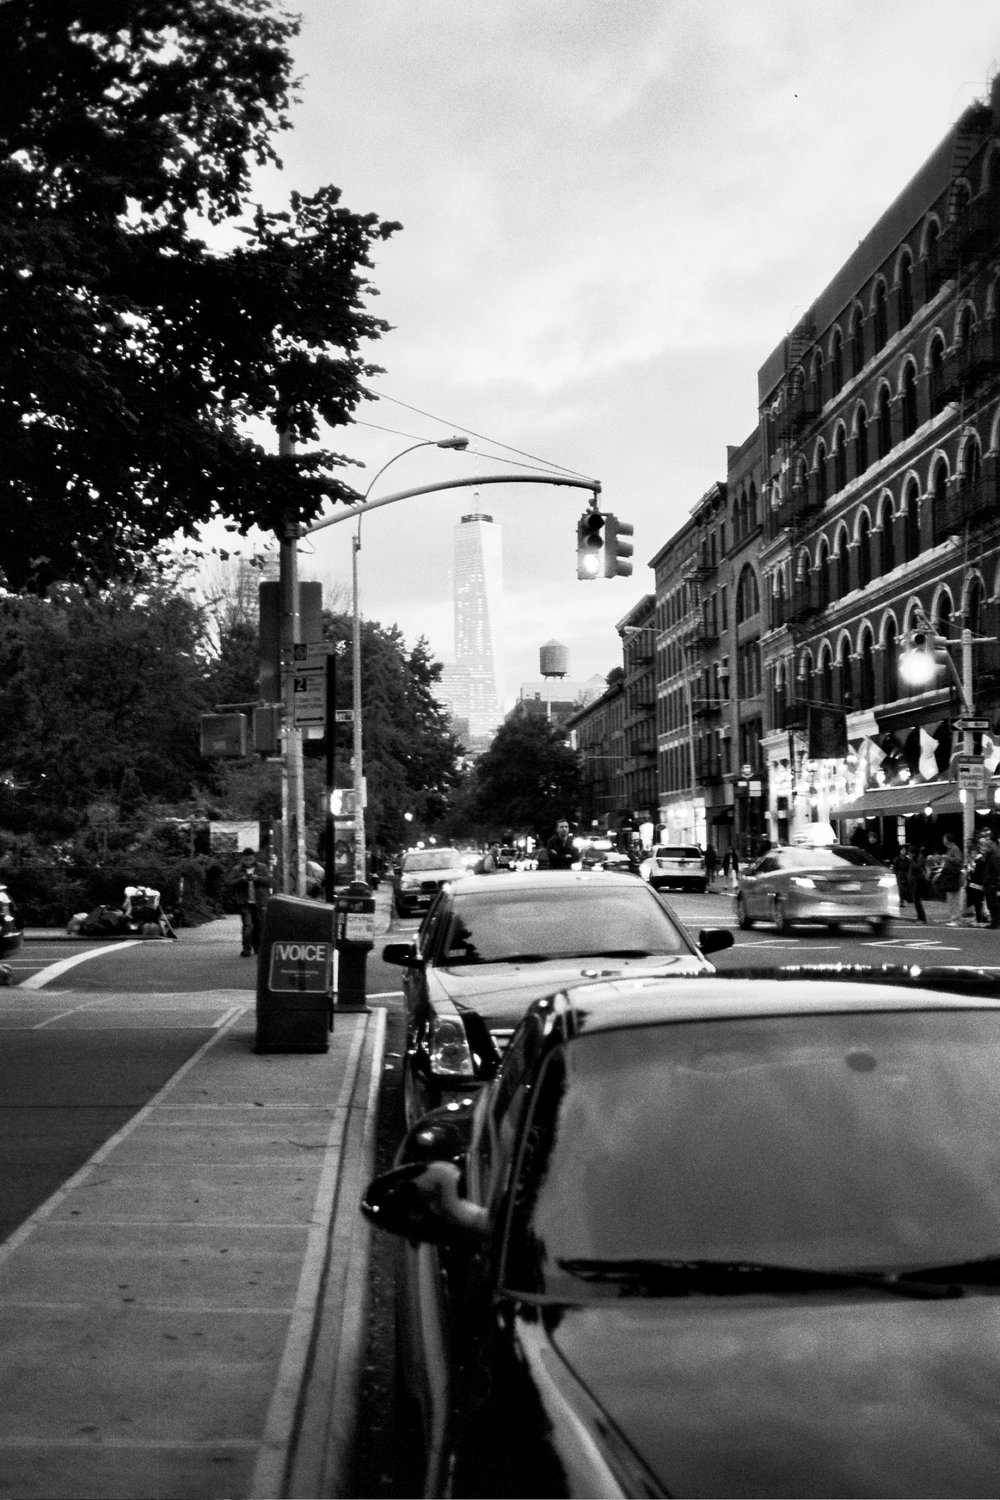 One Freedom Tower as seen from Greenwich Village. Courtesy of Drew Pham